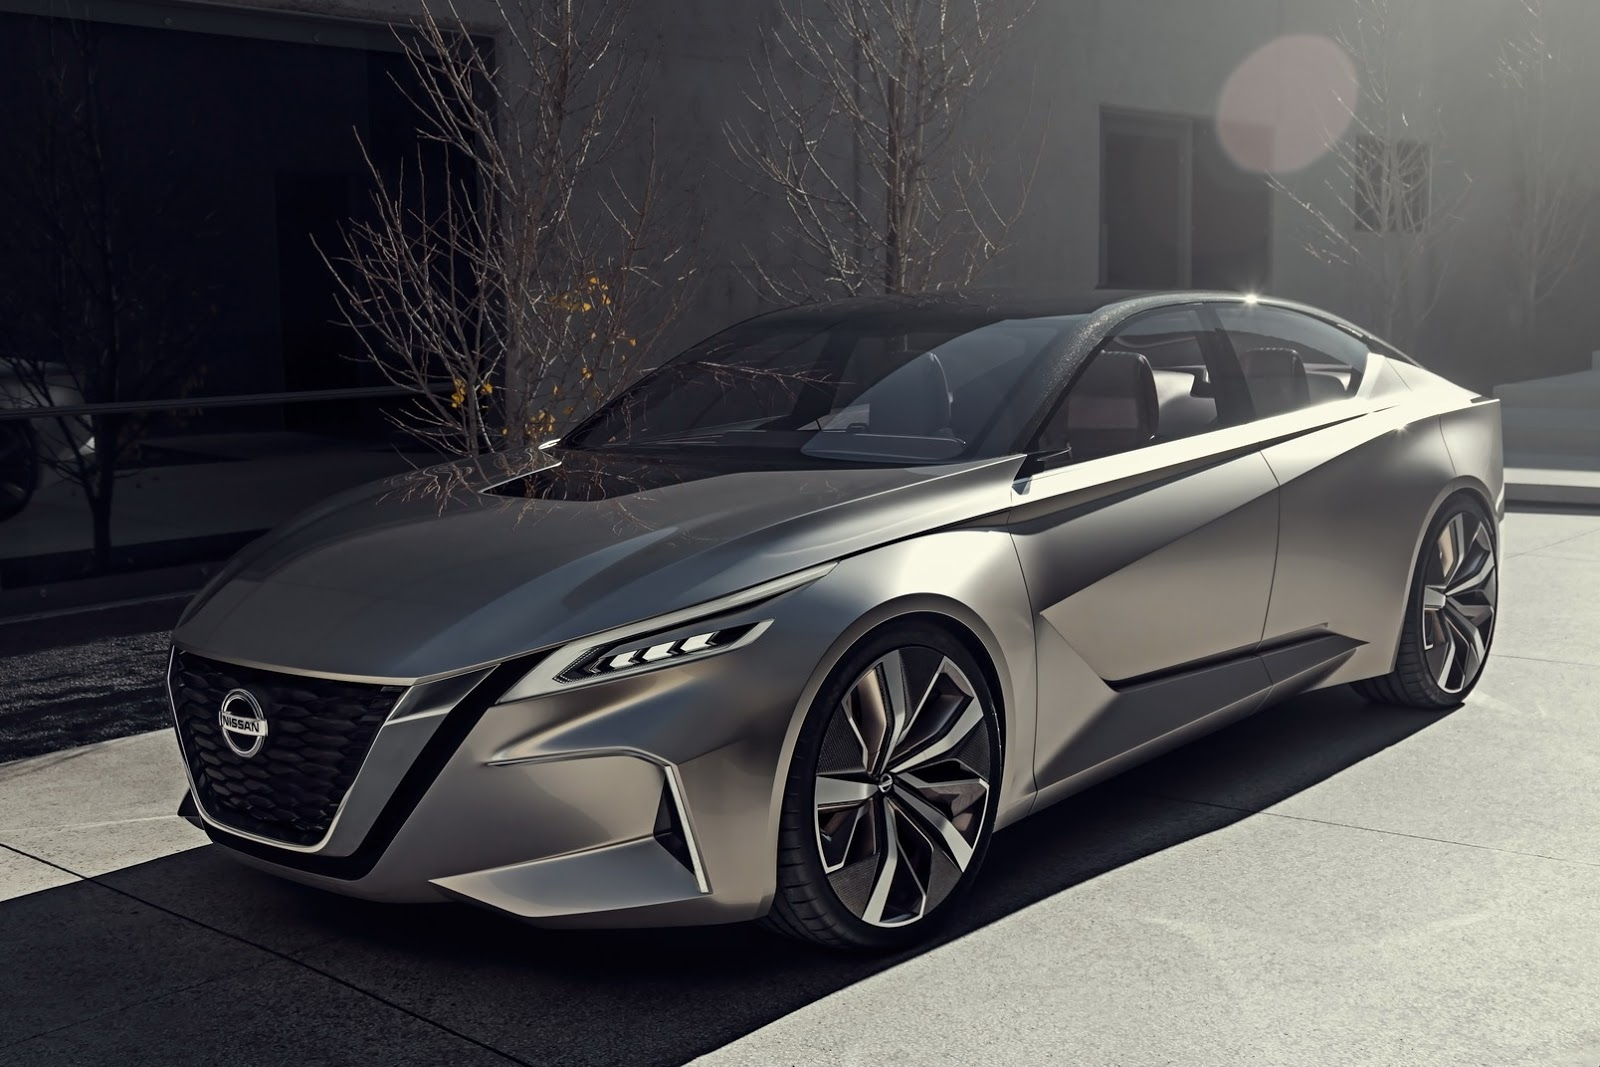 Nissan Vmotion 2.0 concept (1)